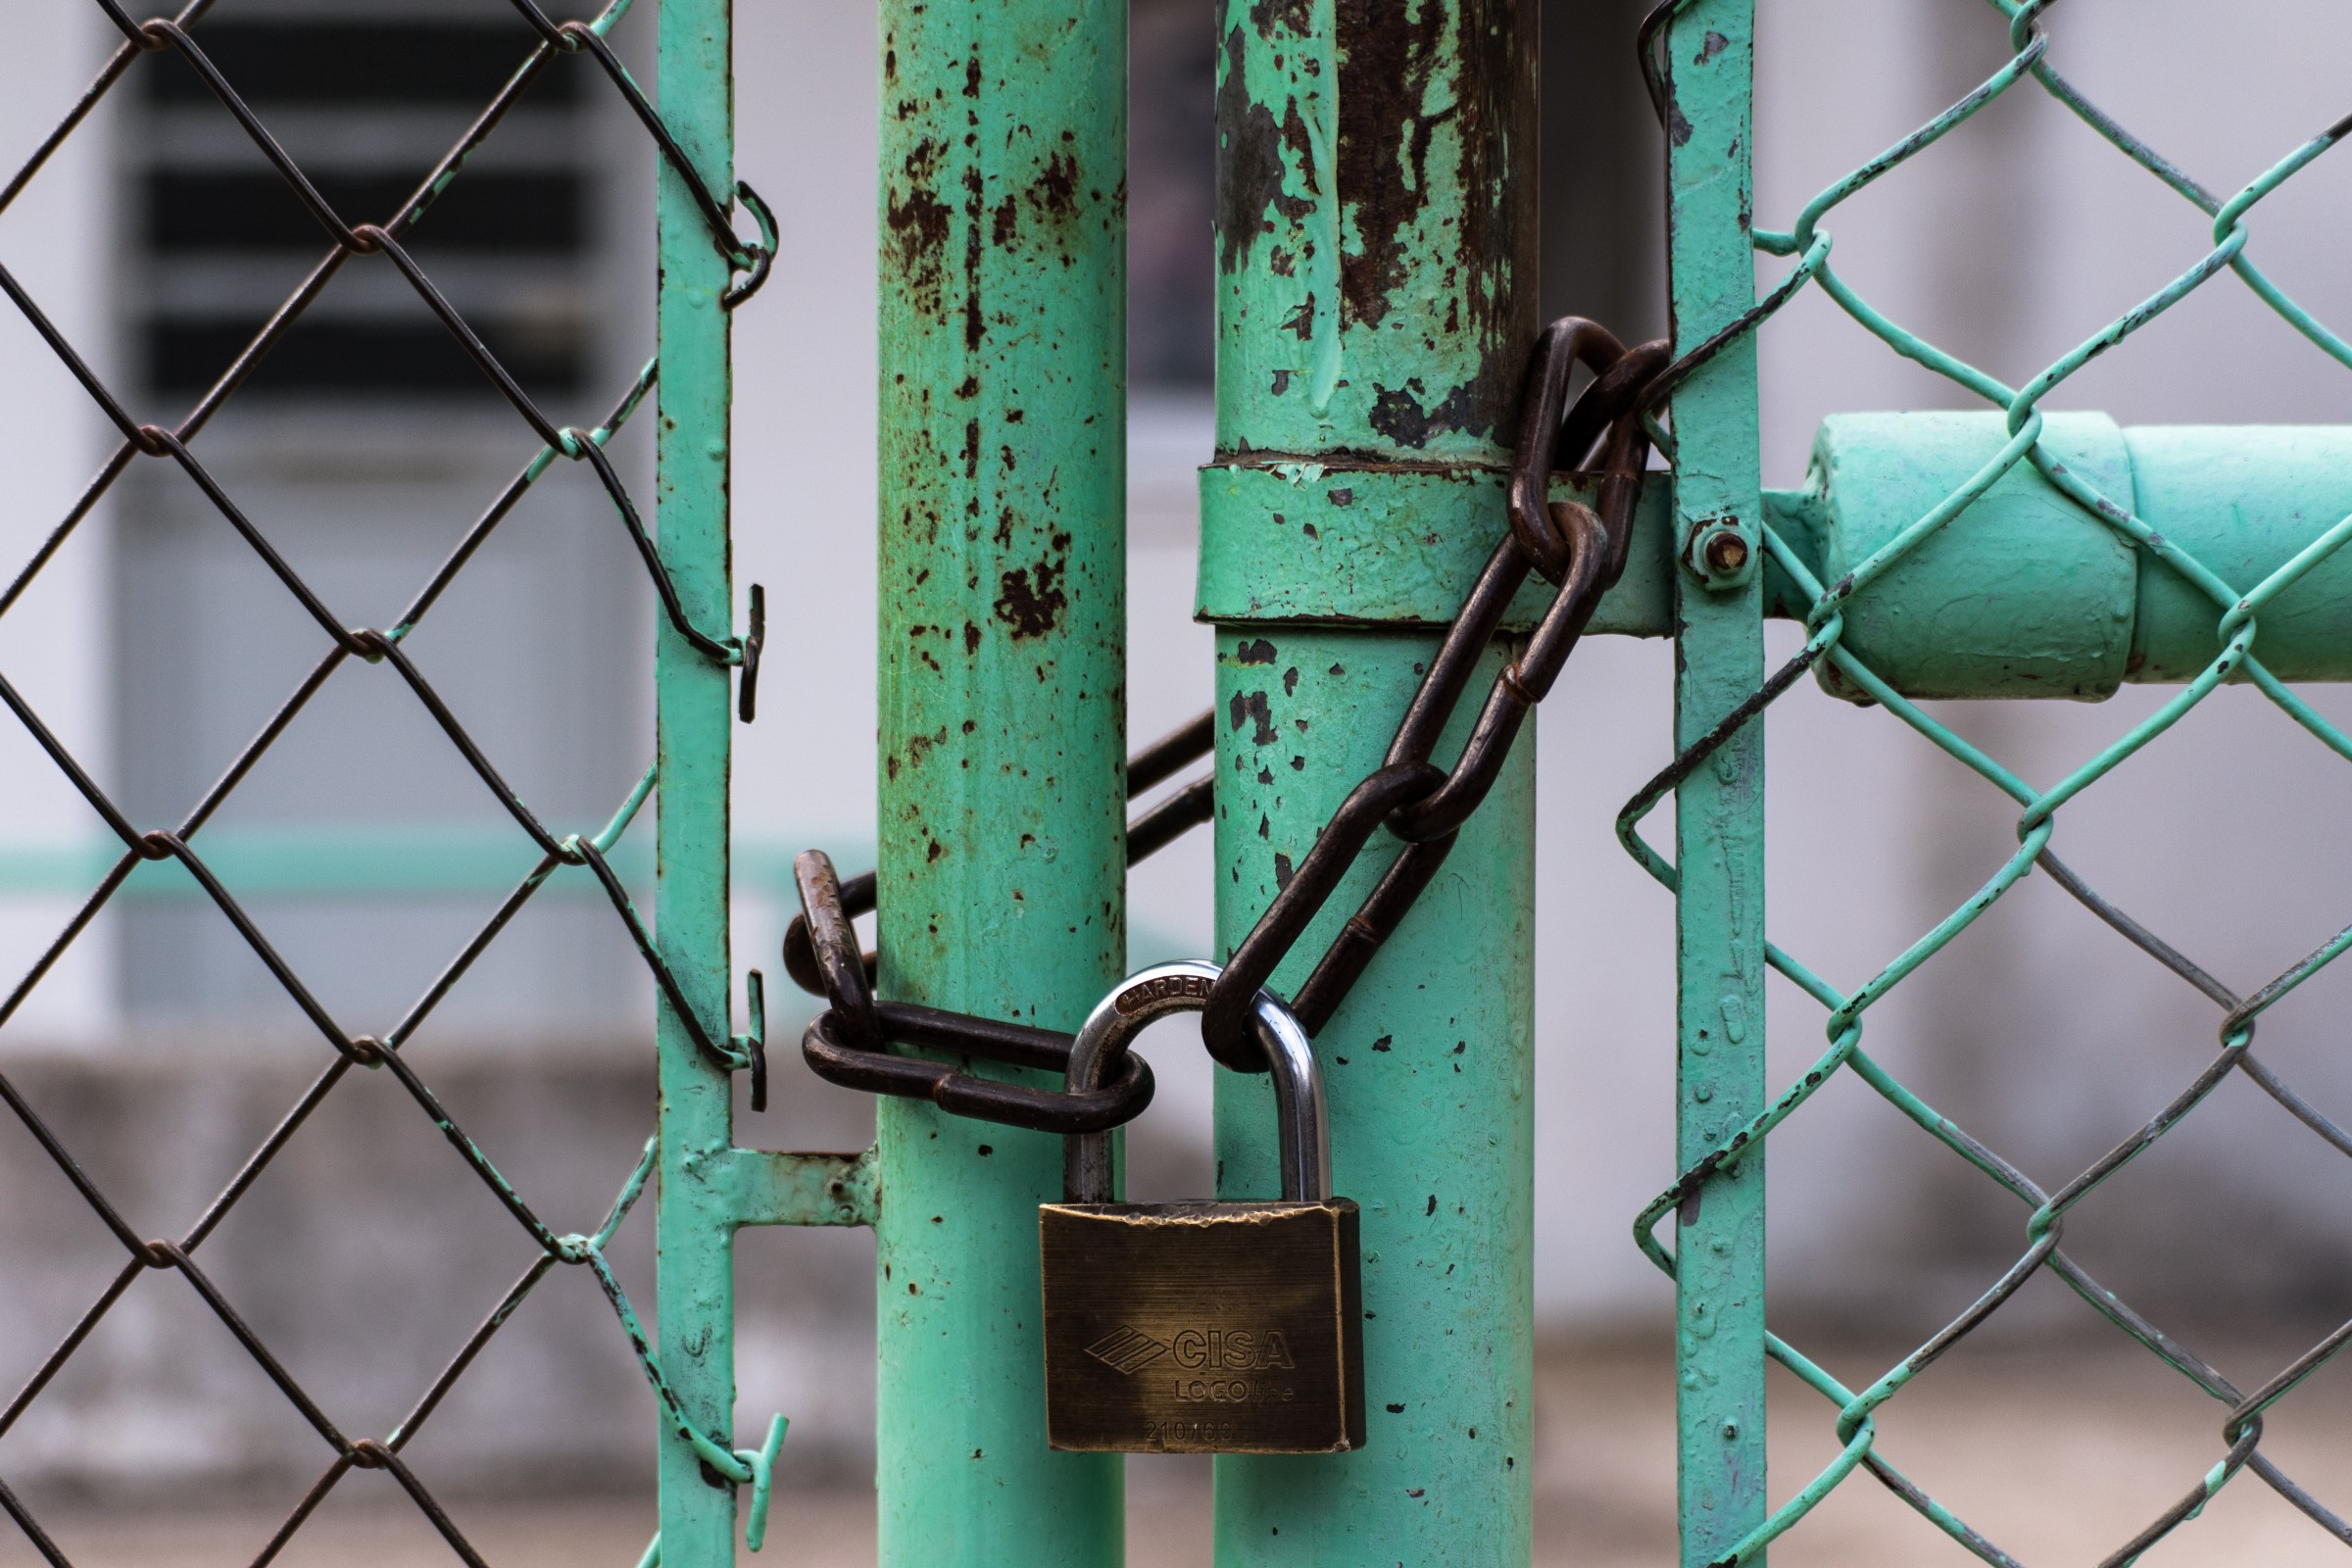 A green chainlink fence closed with a padlock. Photo by Jason Blackeye on  Unsplash